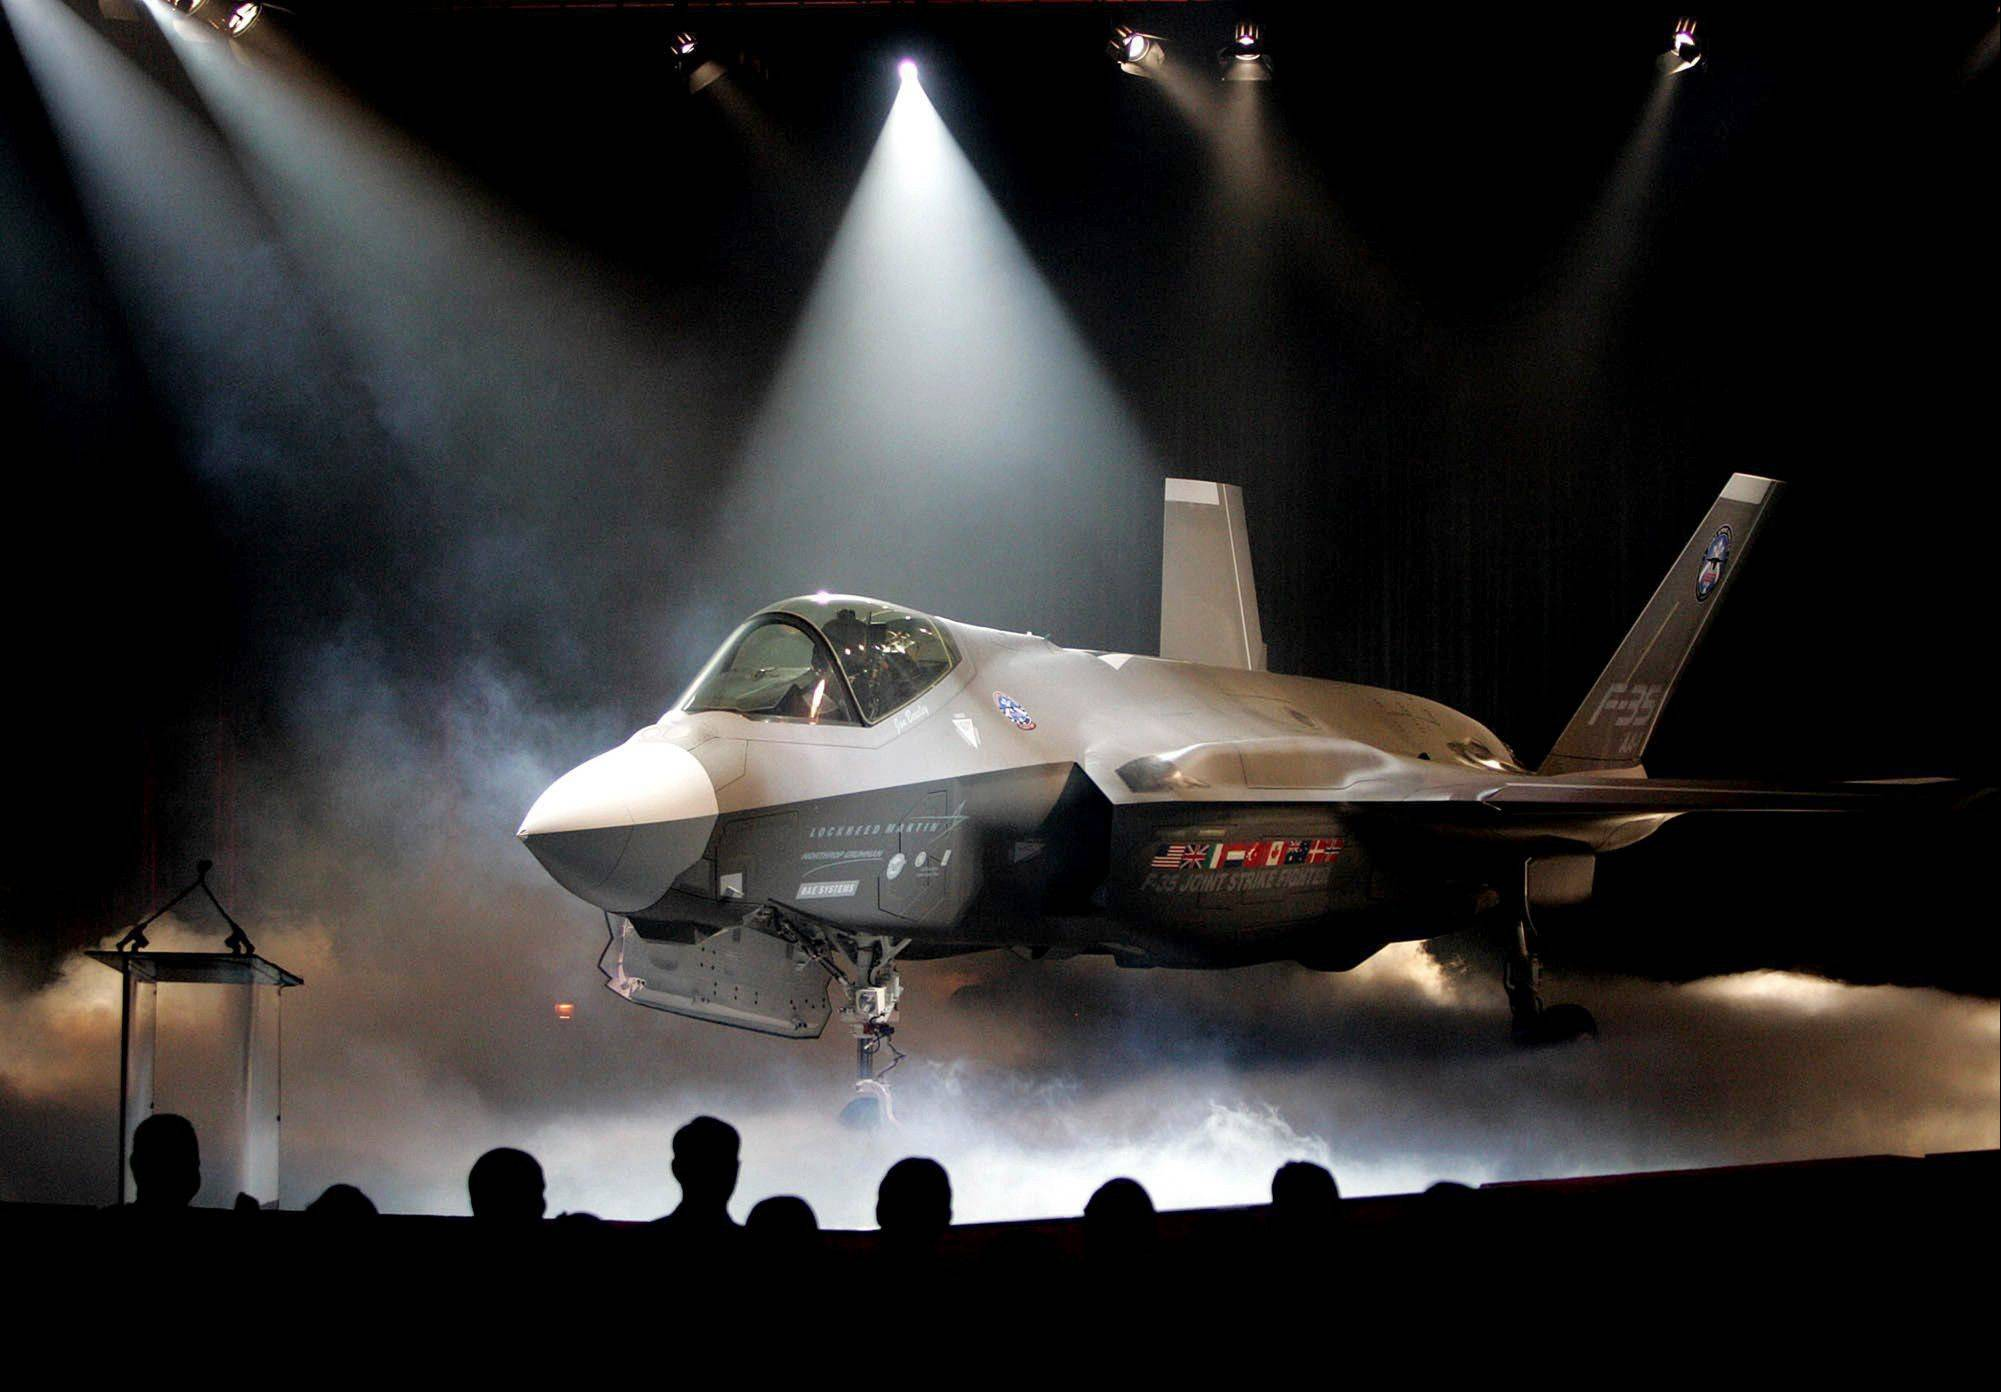 Associated Press/July 7, 2006 The Lockheed Martin F-35 Joint Strike Fighter